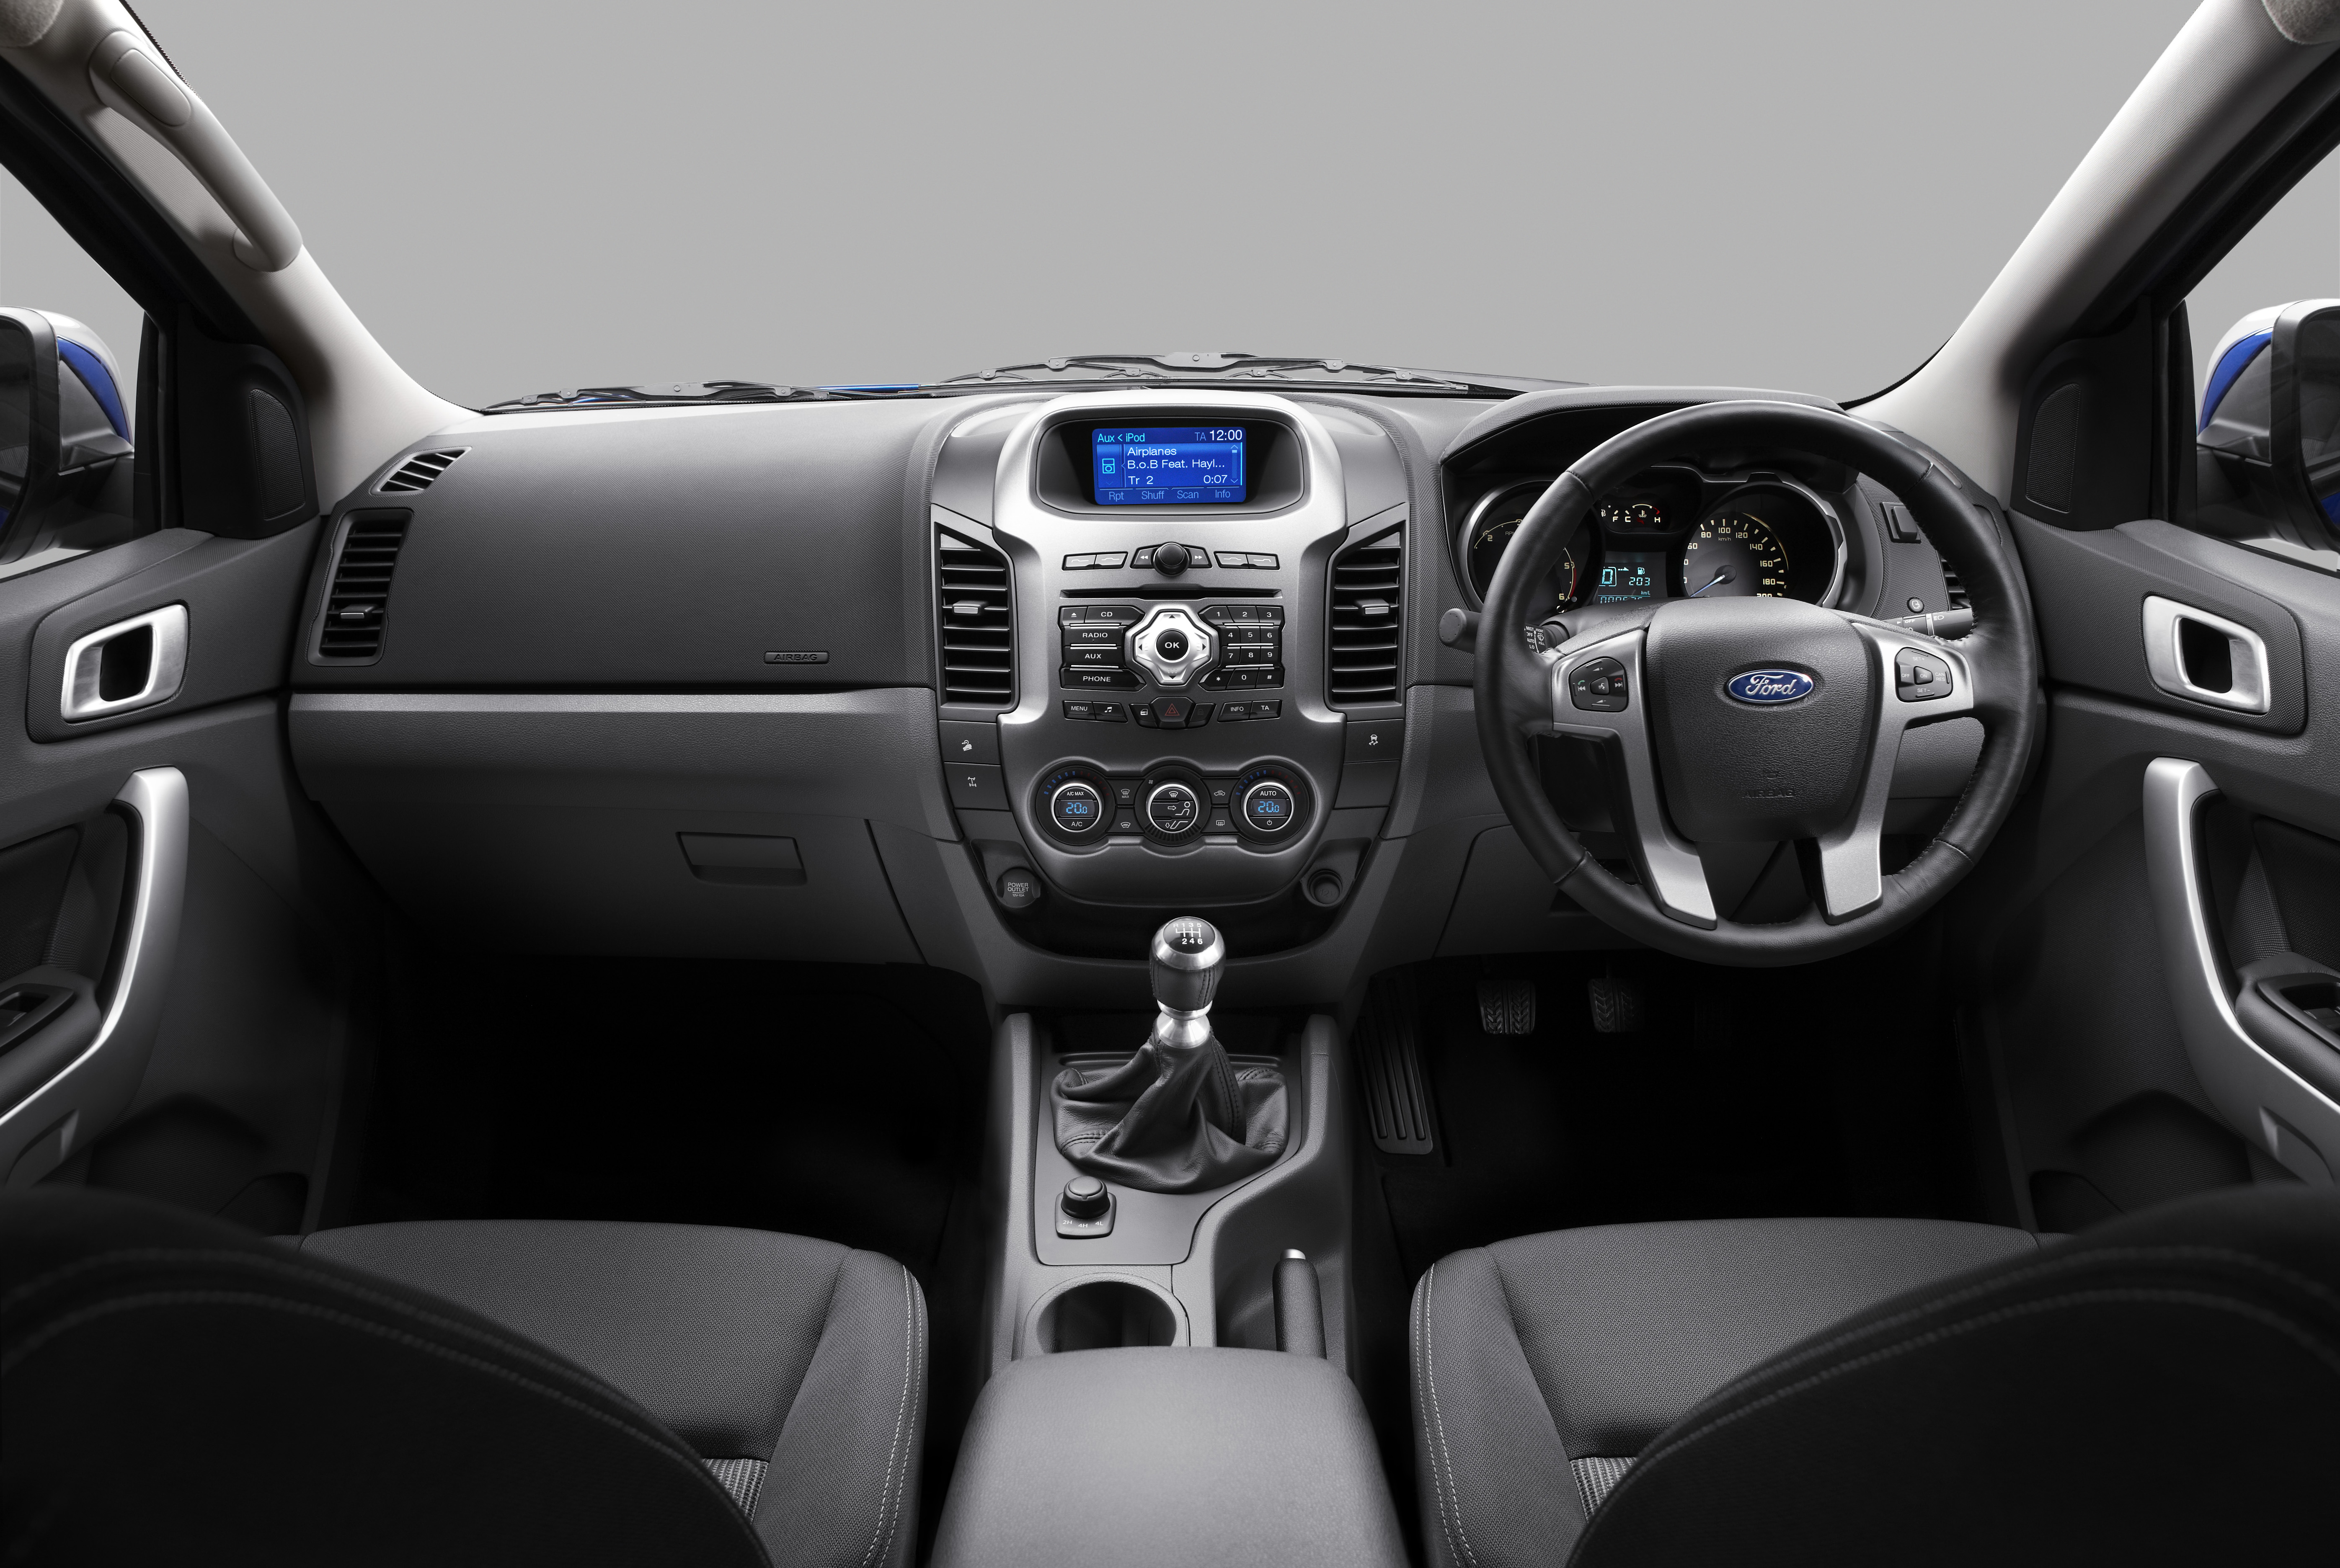 2012 Ford Ranger Interior